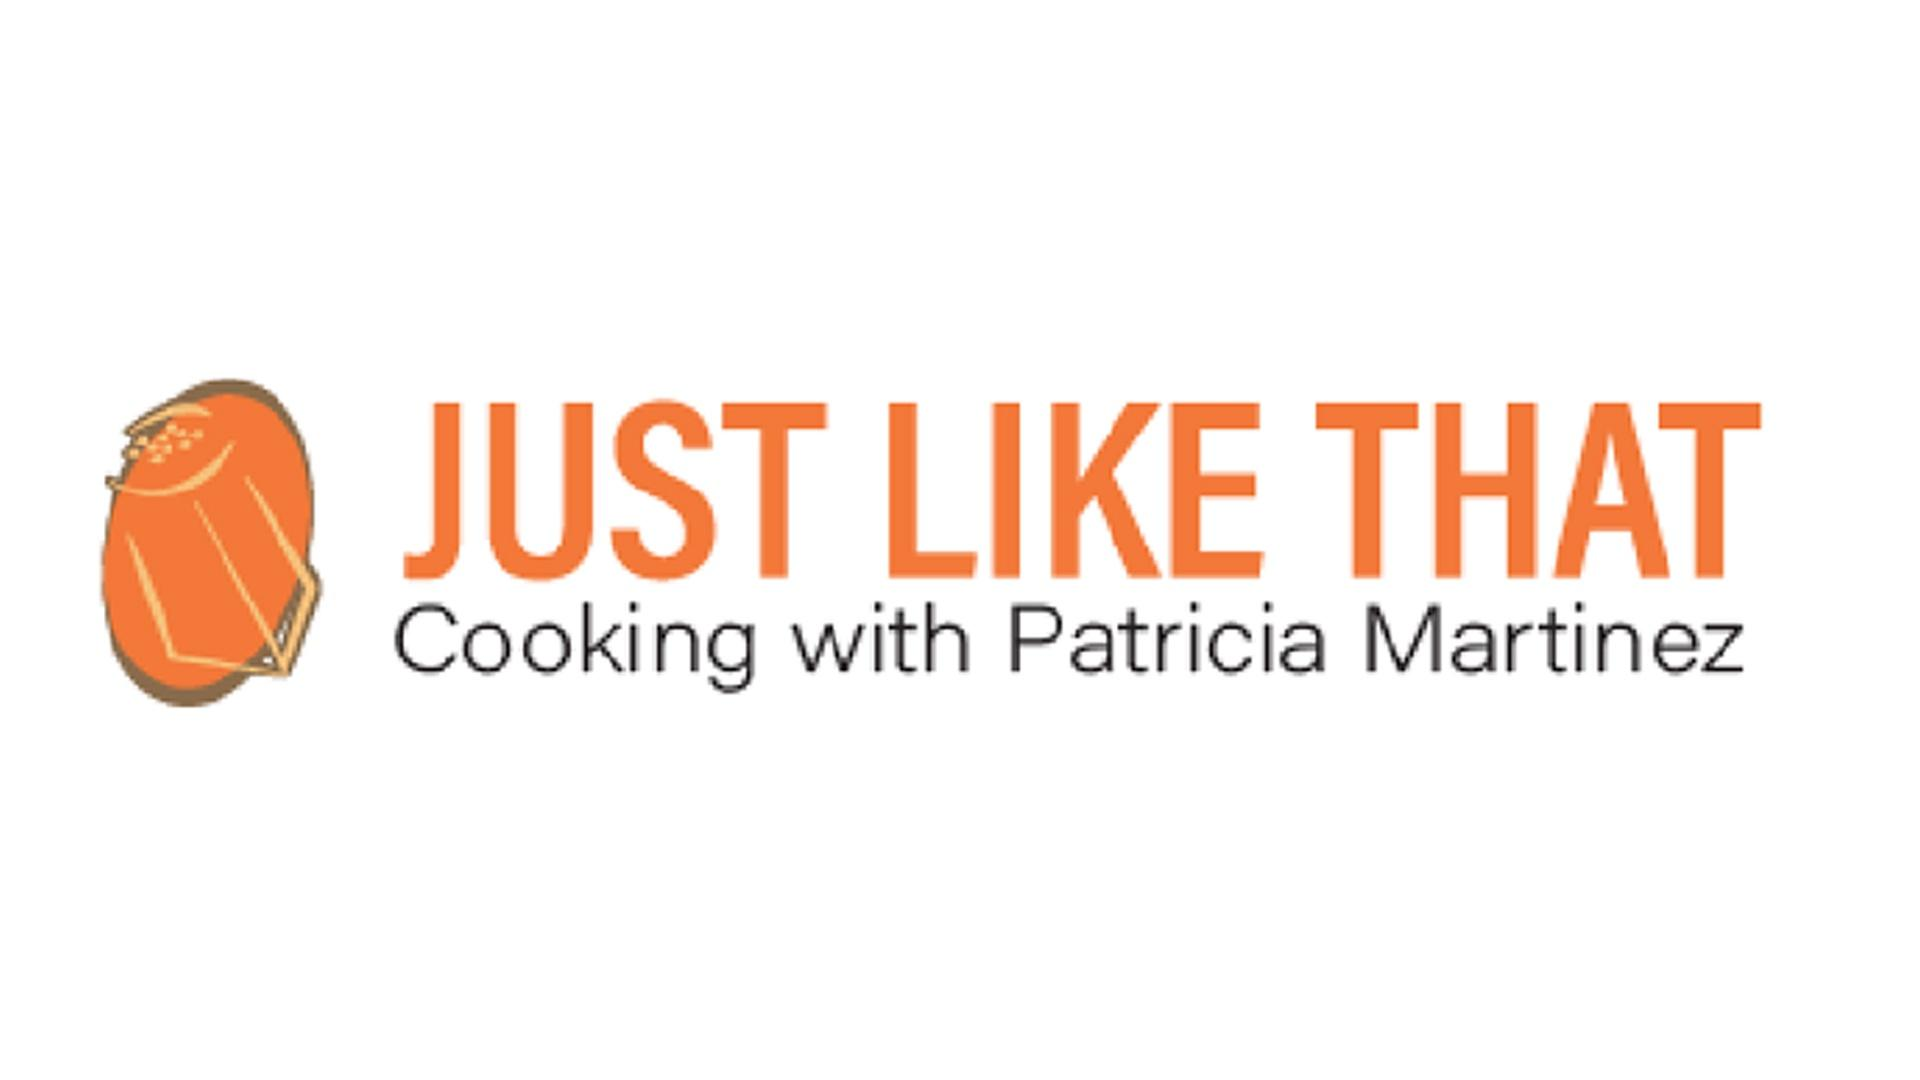 Just Like That - Cooking with Patricia Martinez